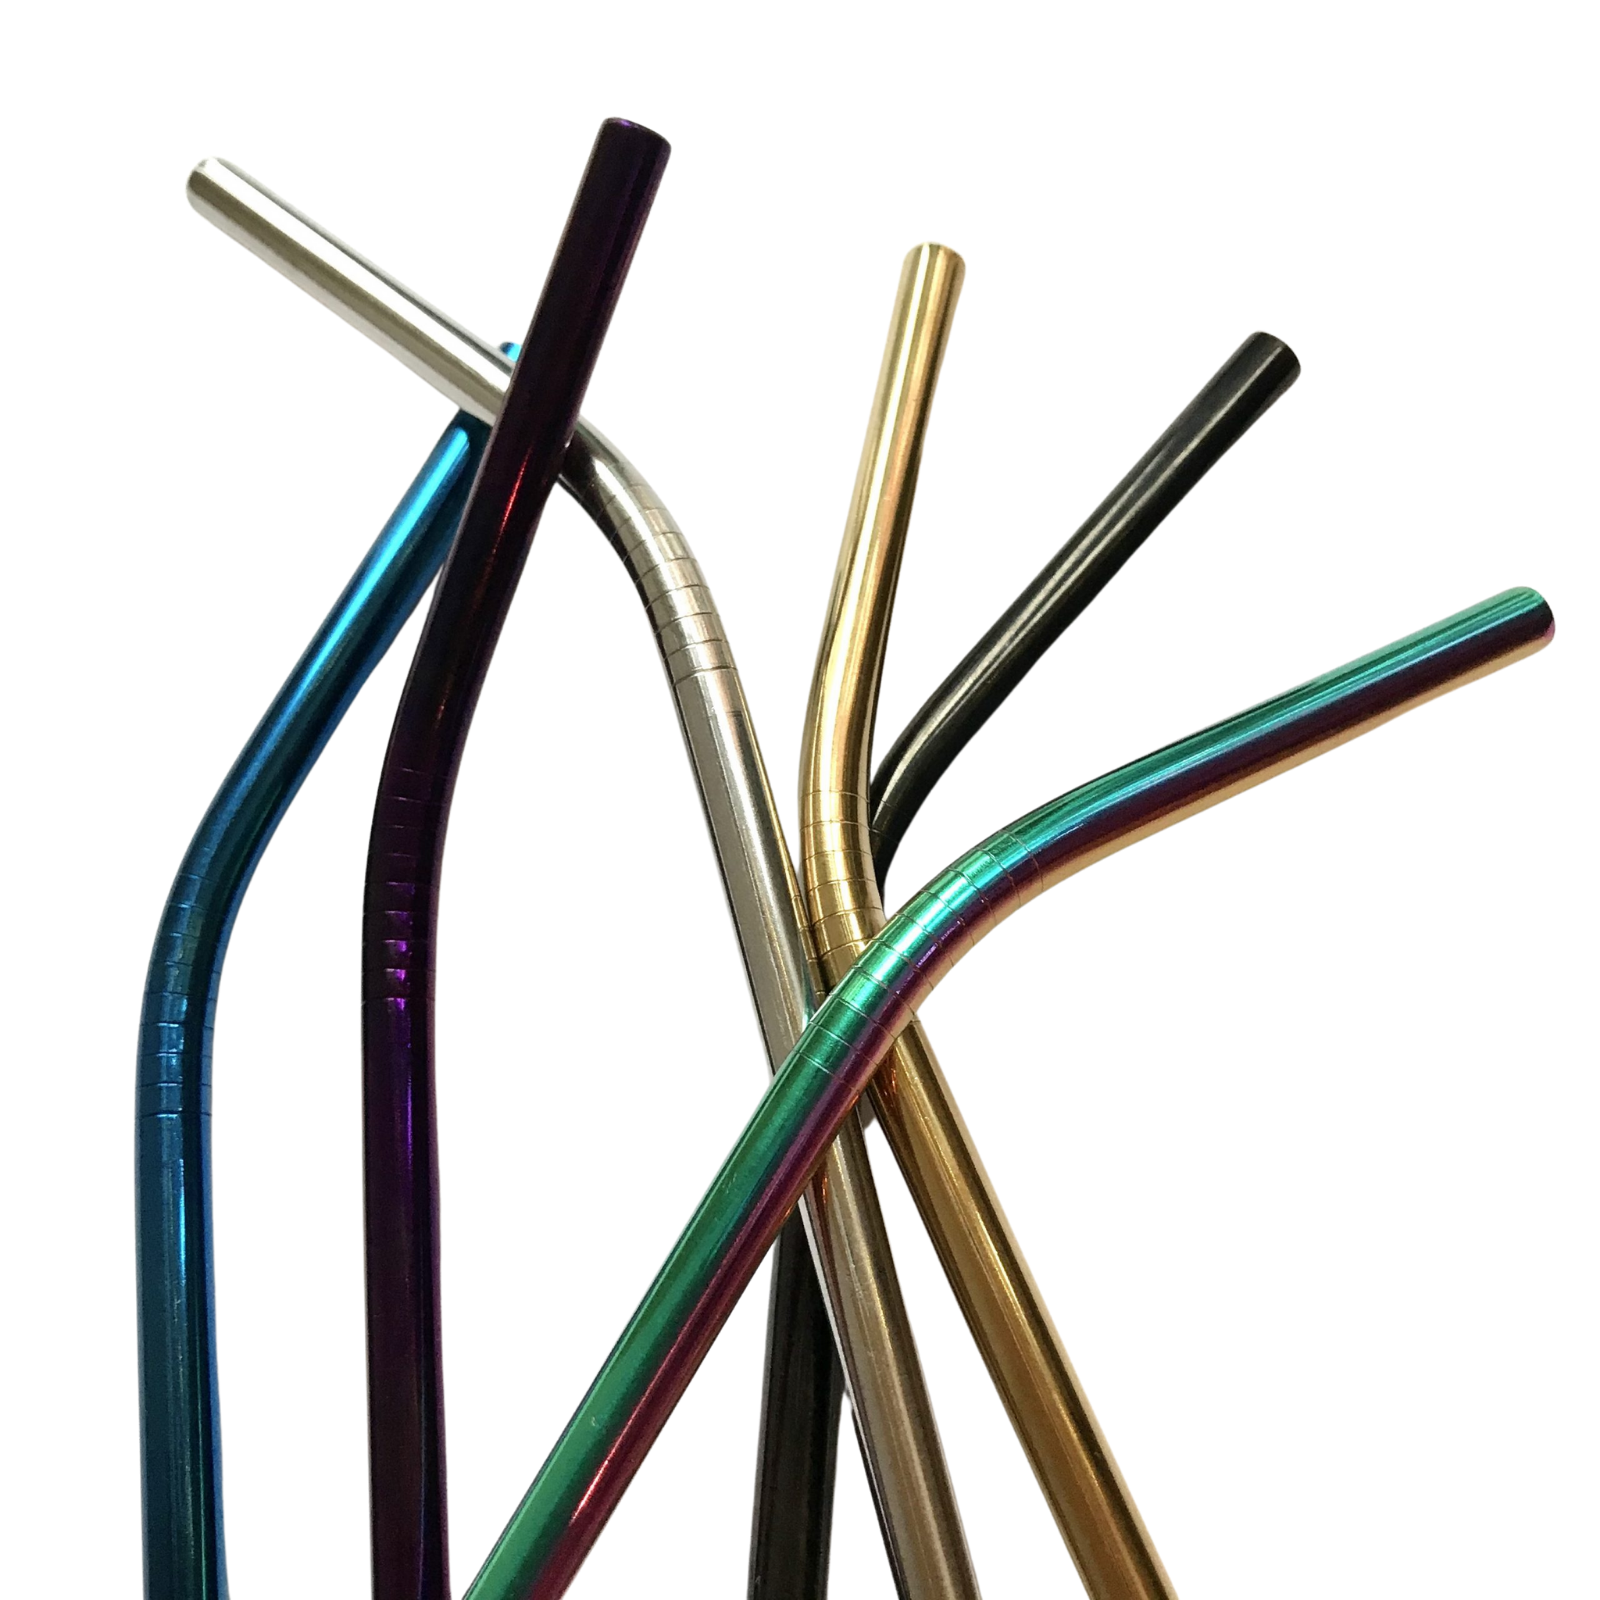 Product image for reusable straws rainbow, blue, purple, black in 2 shapes